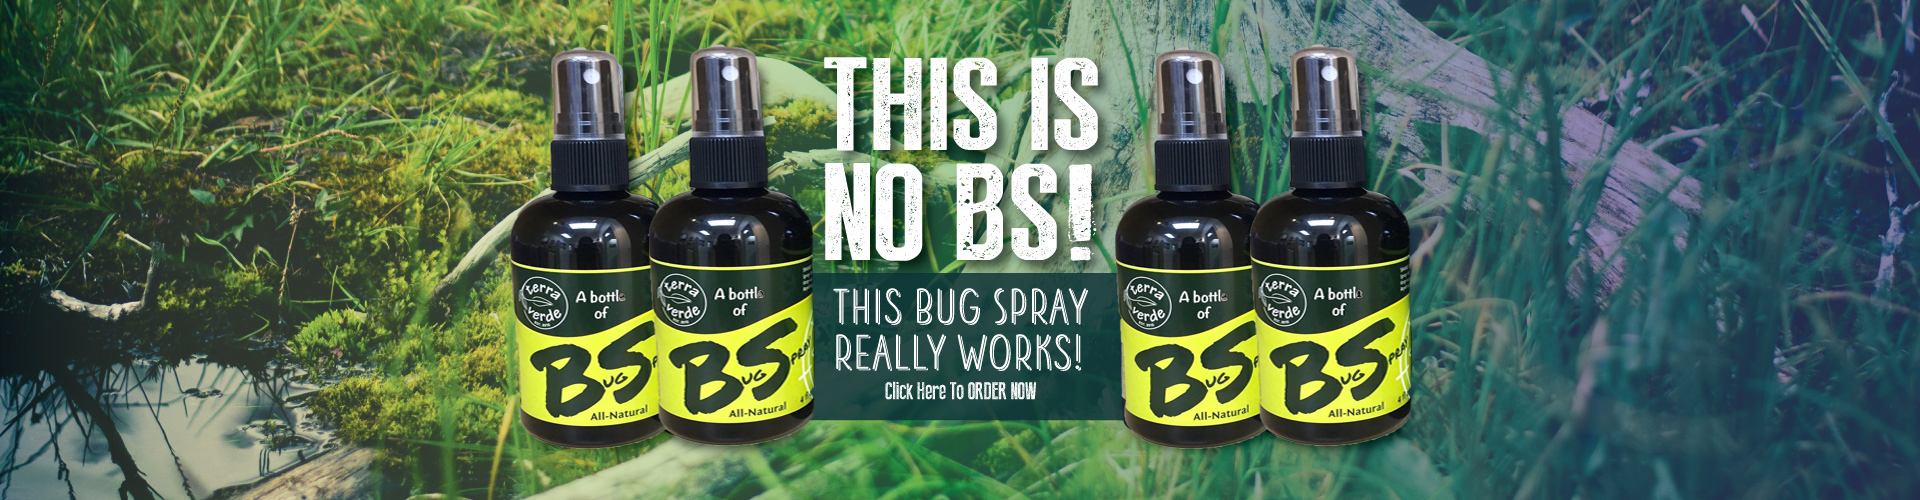 Terra Verde Bug Spray - Havre De Grace Maryland